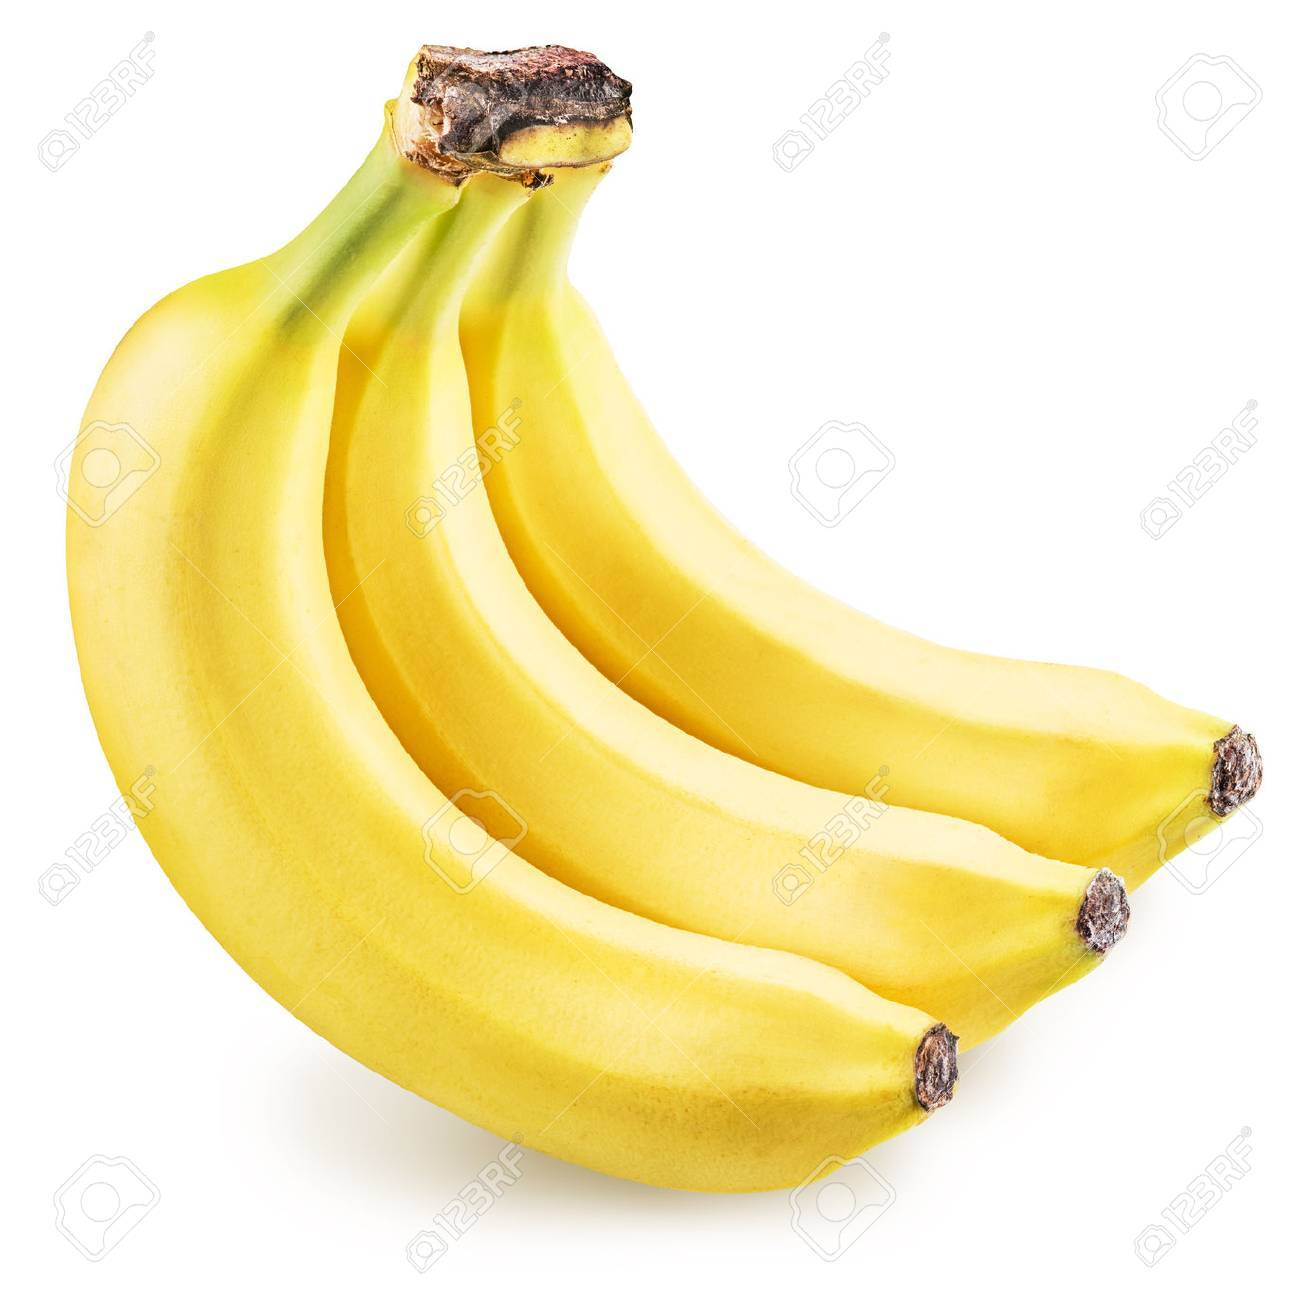 Bananas isolated on a white background. Picture is of high quality. Clipping path. Standard-Bild - 46556231